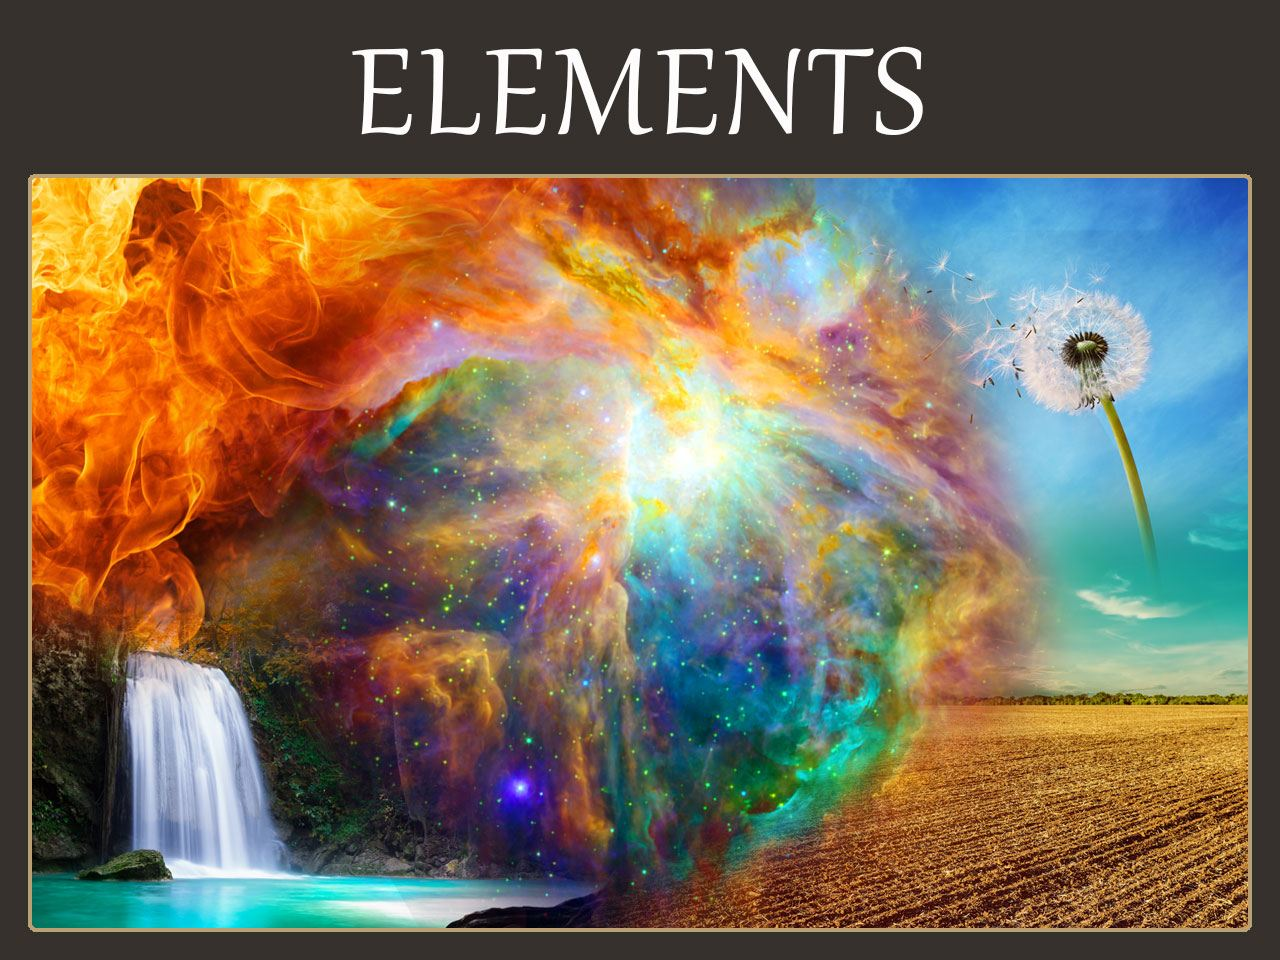 Five 5 elements symbolic meaning symbols and meanings 5 elements symbolism meanings 1280x960 buycottarizona